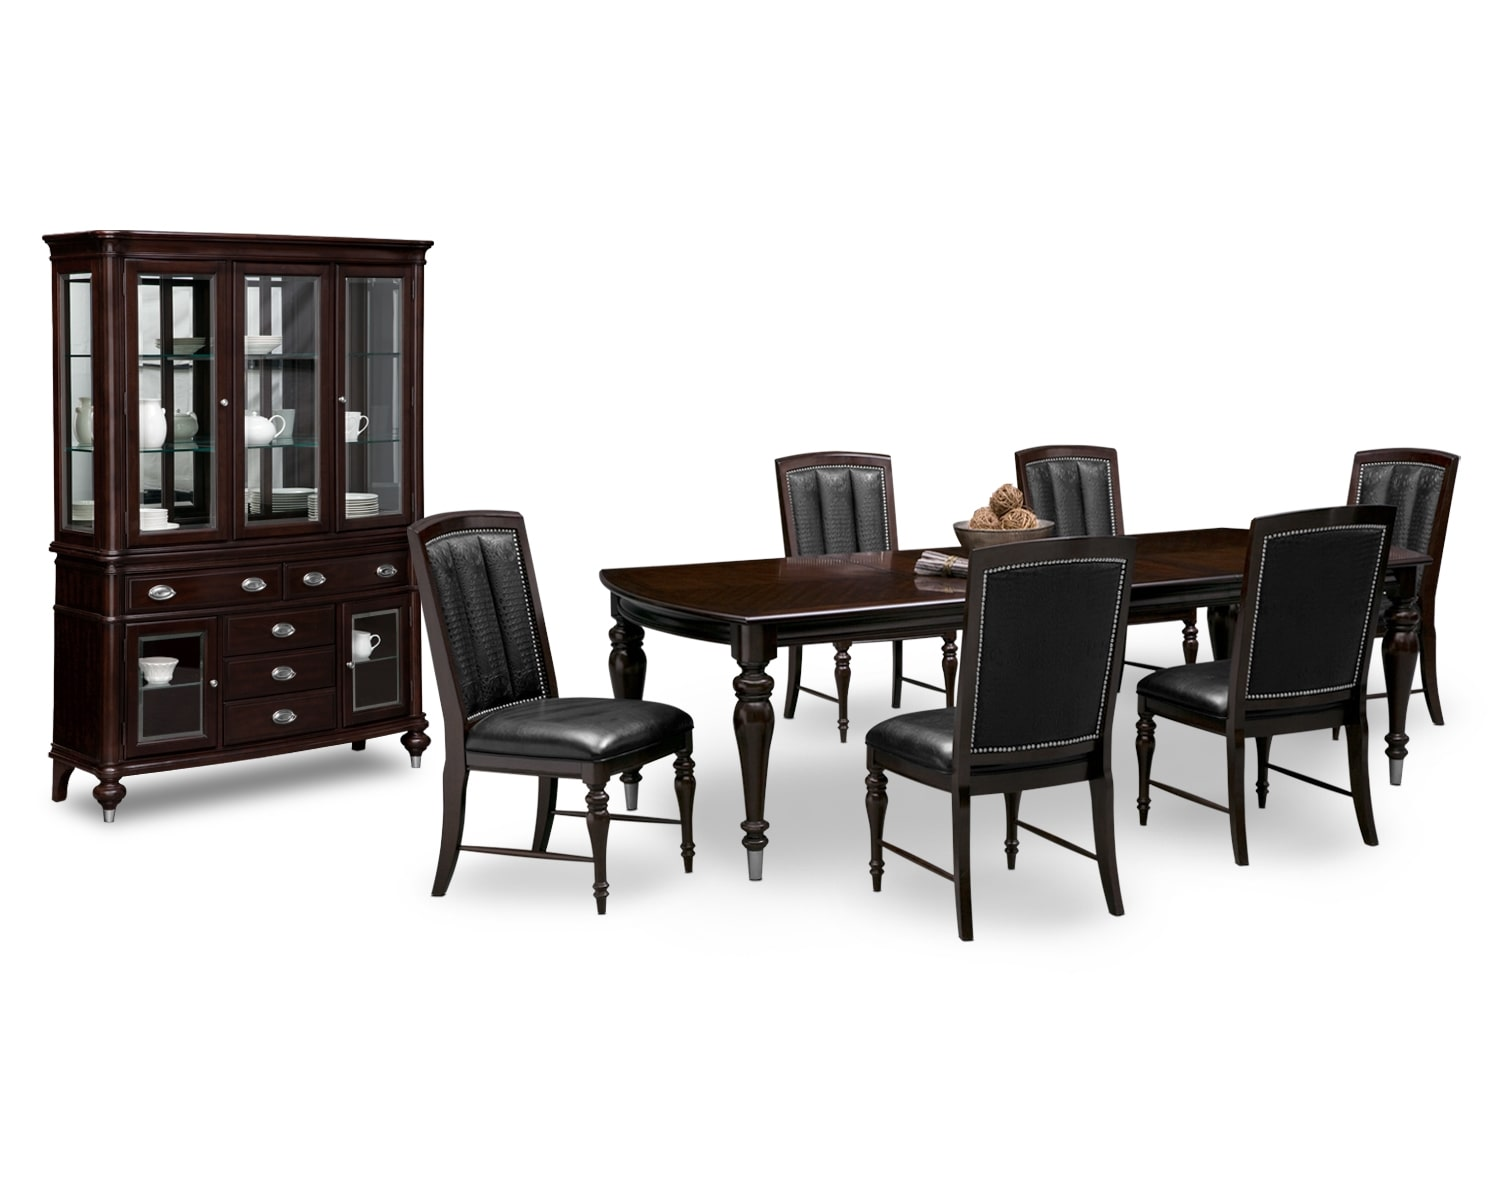 Shop Dining Room Collections   Value City Furniture and Mattresses The Esquire Collection   Cherry